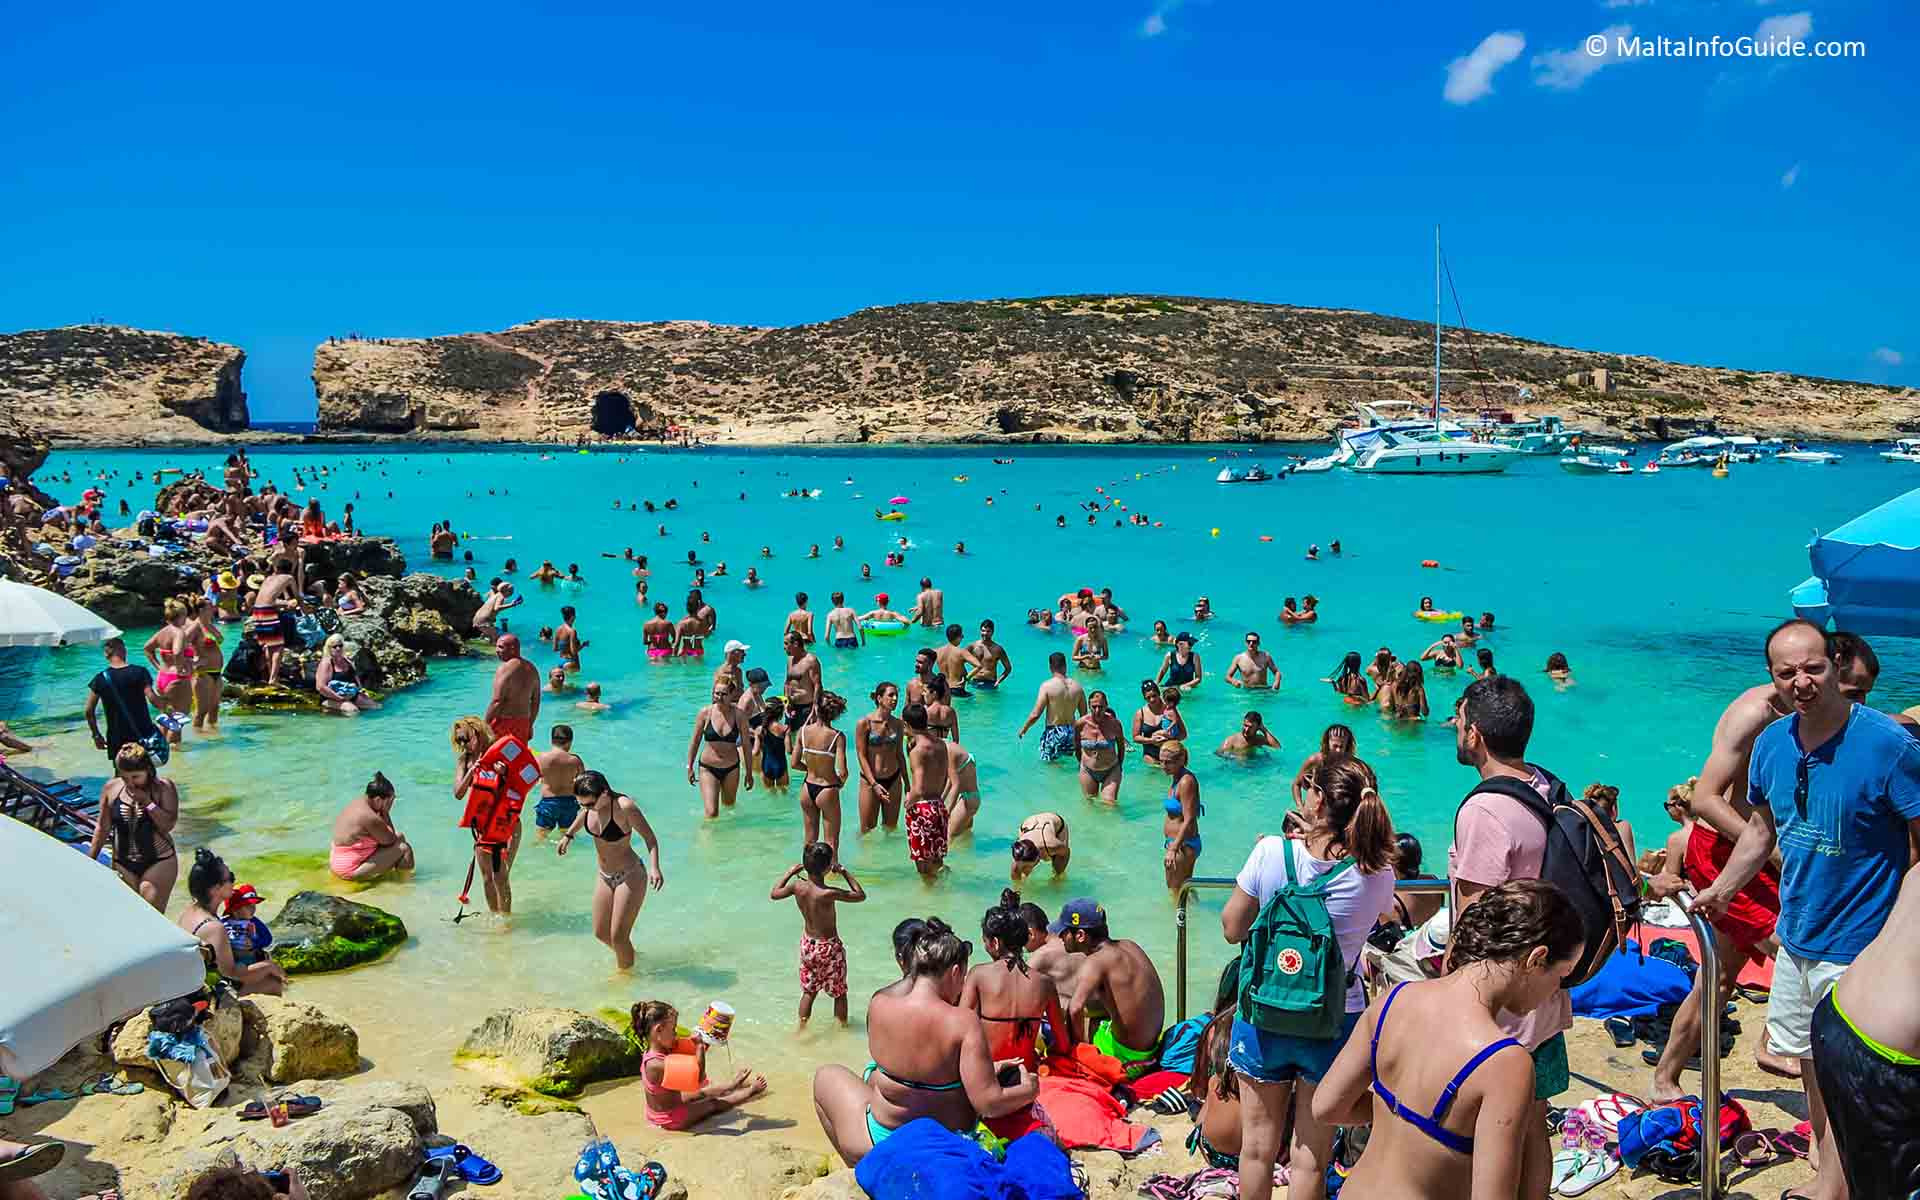 The Blue Lagoon at the island of Comino within the archipelago of the Maltese islands